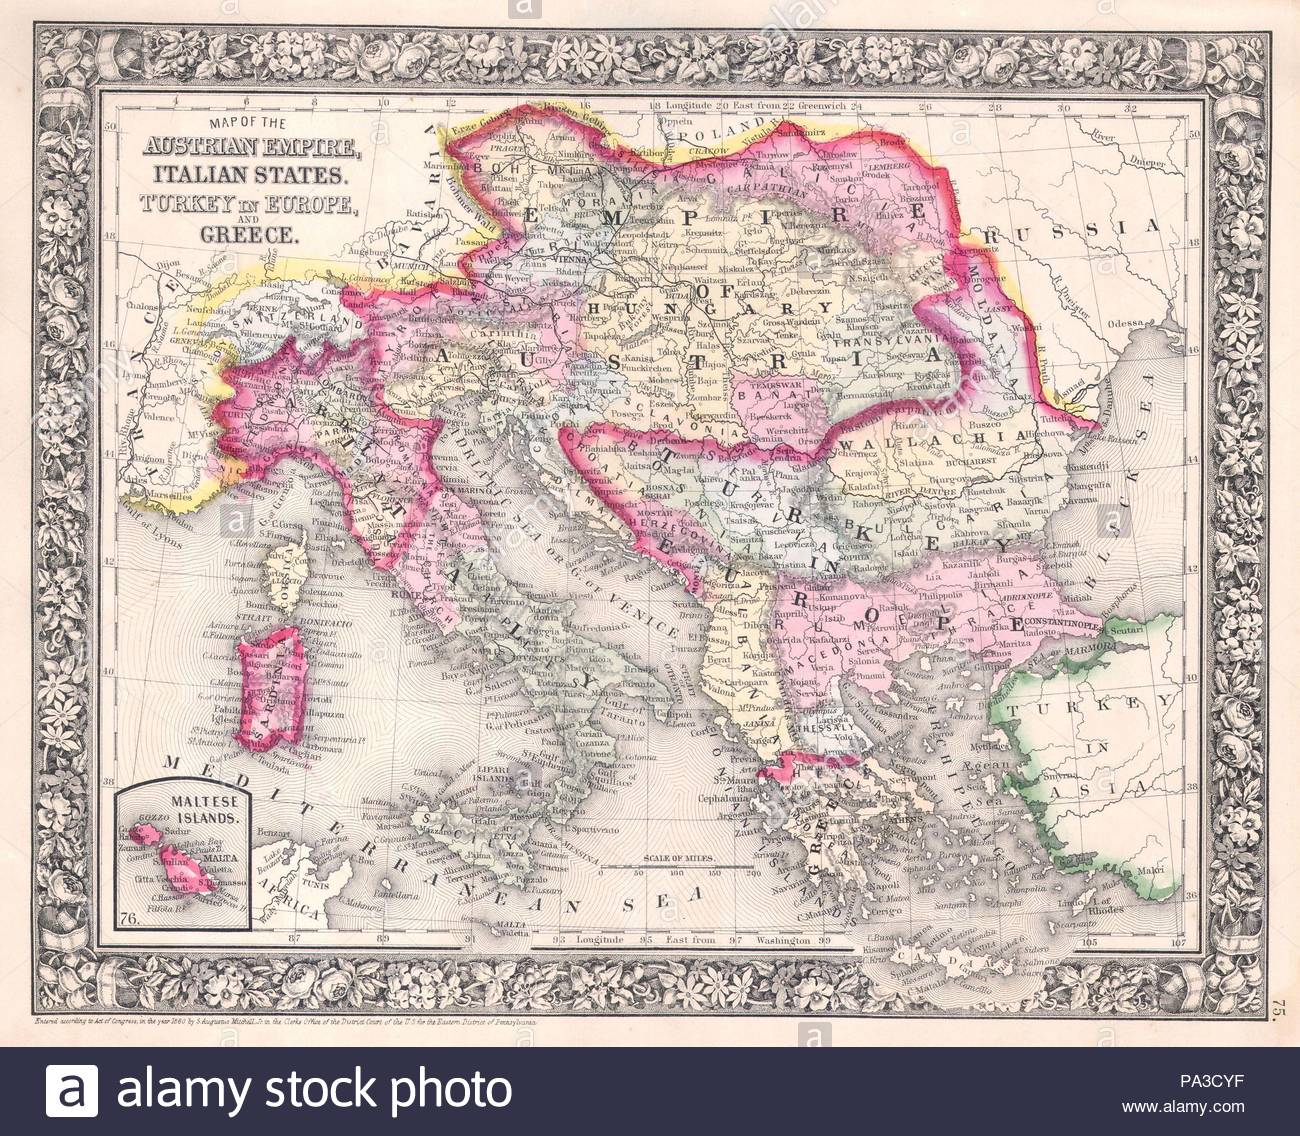 Map italy greece world map full maps 1864 mitchell map of italy greece and the austrian empire stock 1864 mitchell map of italy gumiabroncs Choice Image